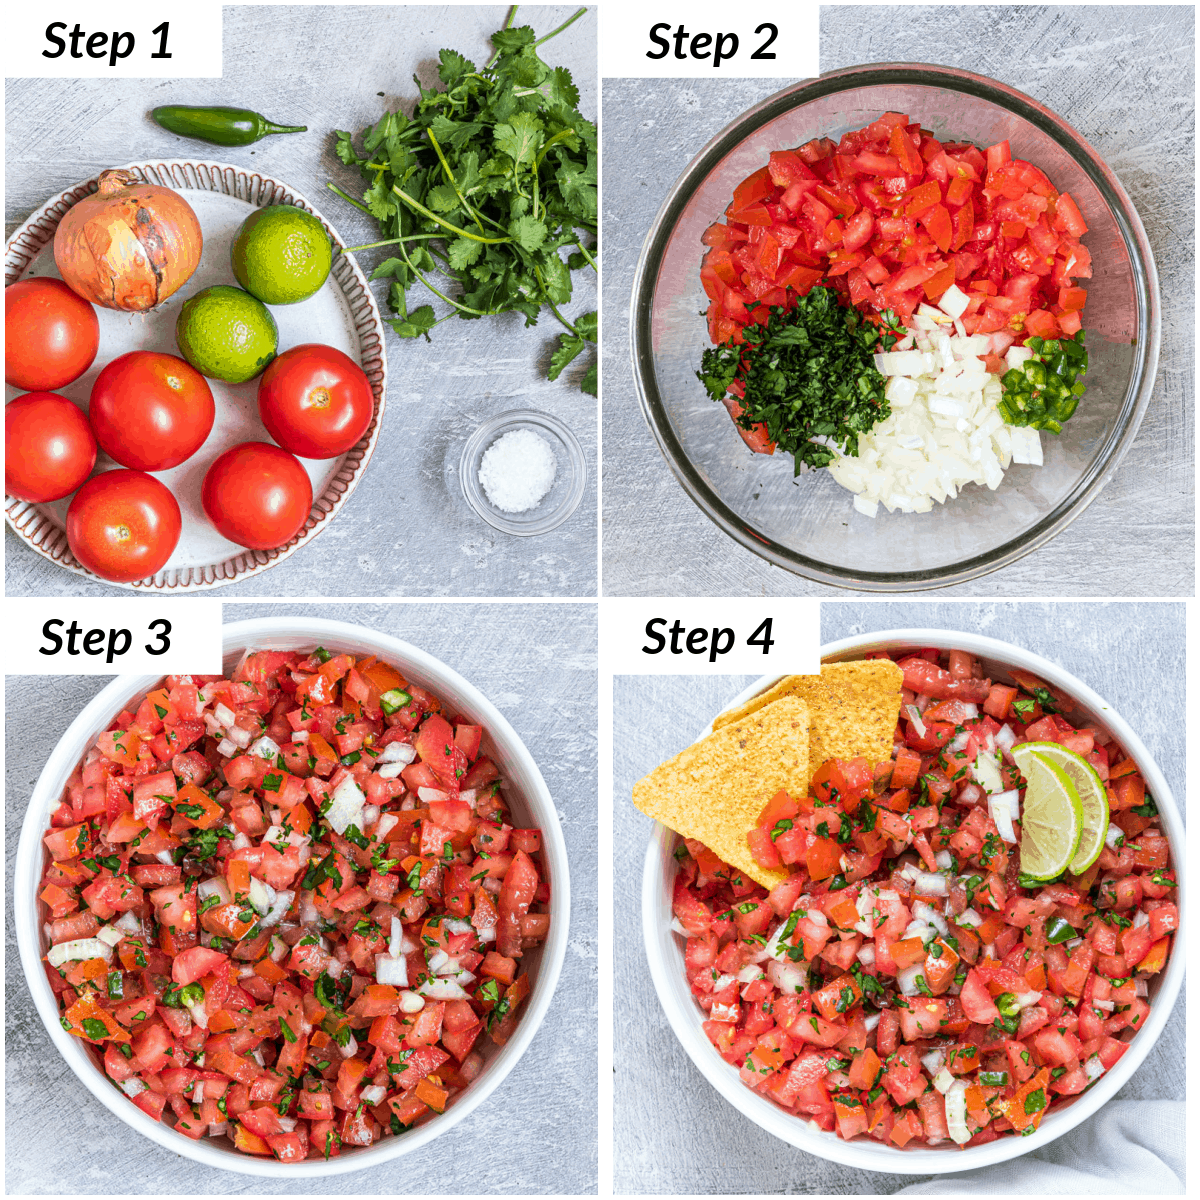 image collage showing the steps for making pico de gallo salsa